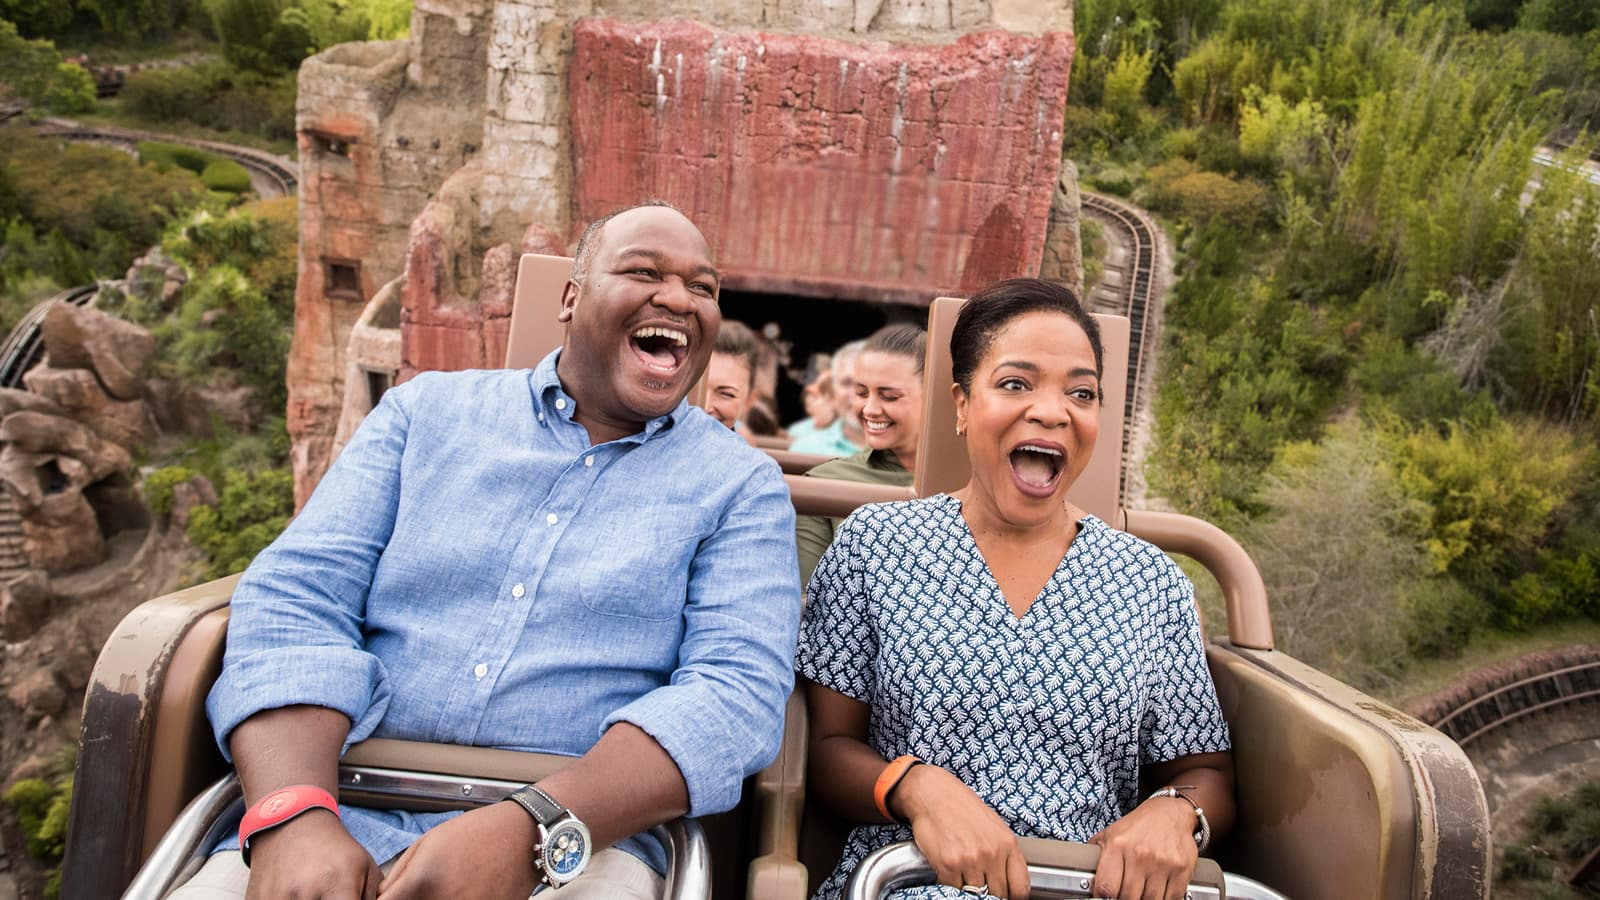 A man and woman screaming with joy while riding the Expedition Everest attraction